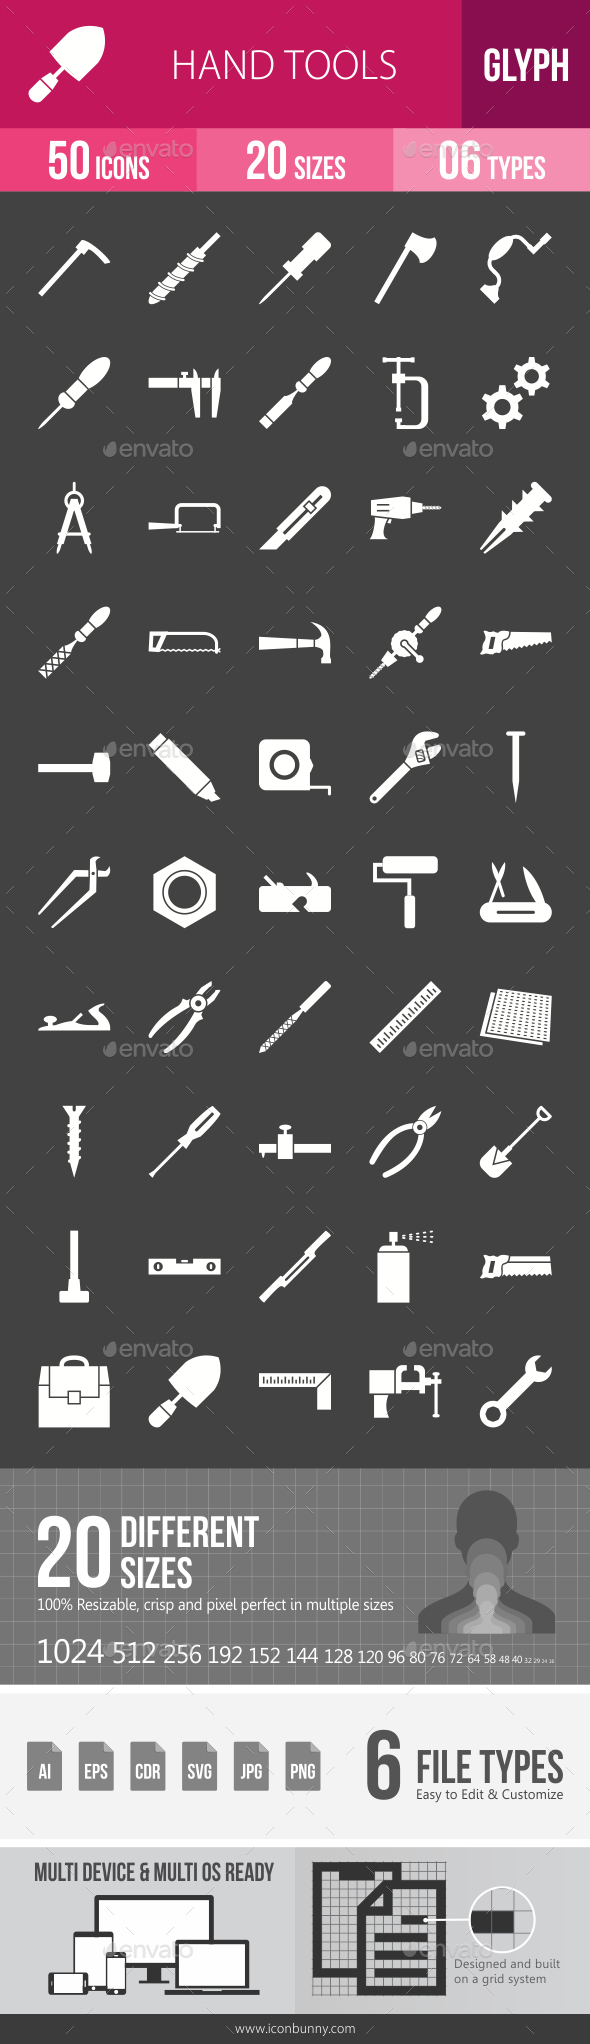 Hand Tools Glyph Inverted Icons - Icons